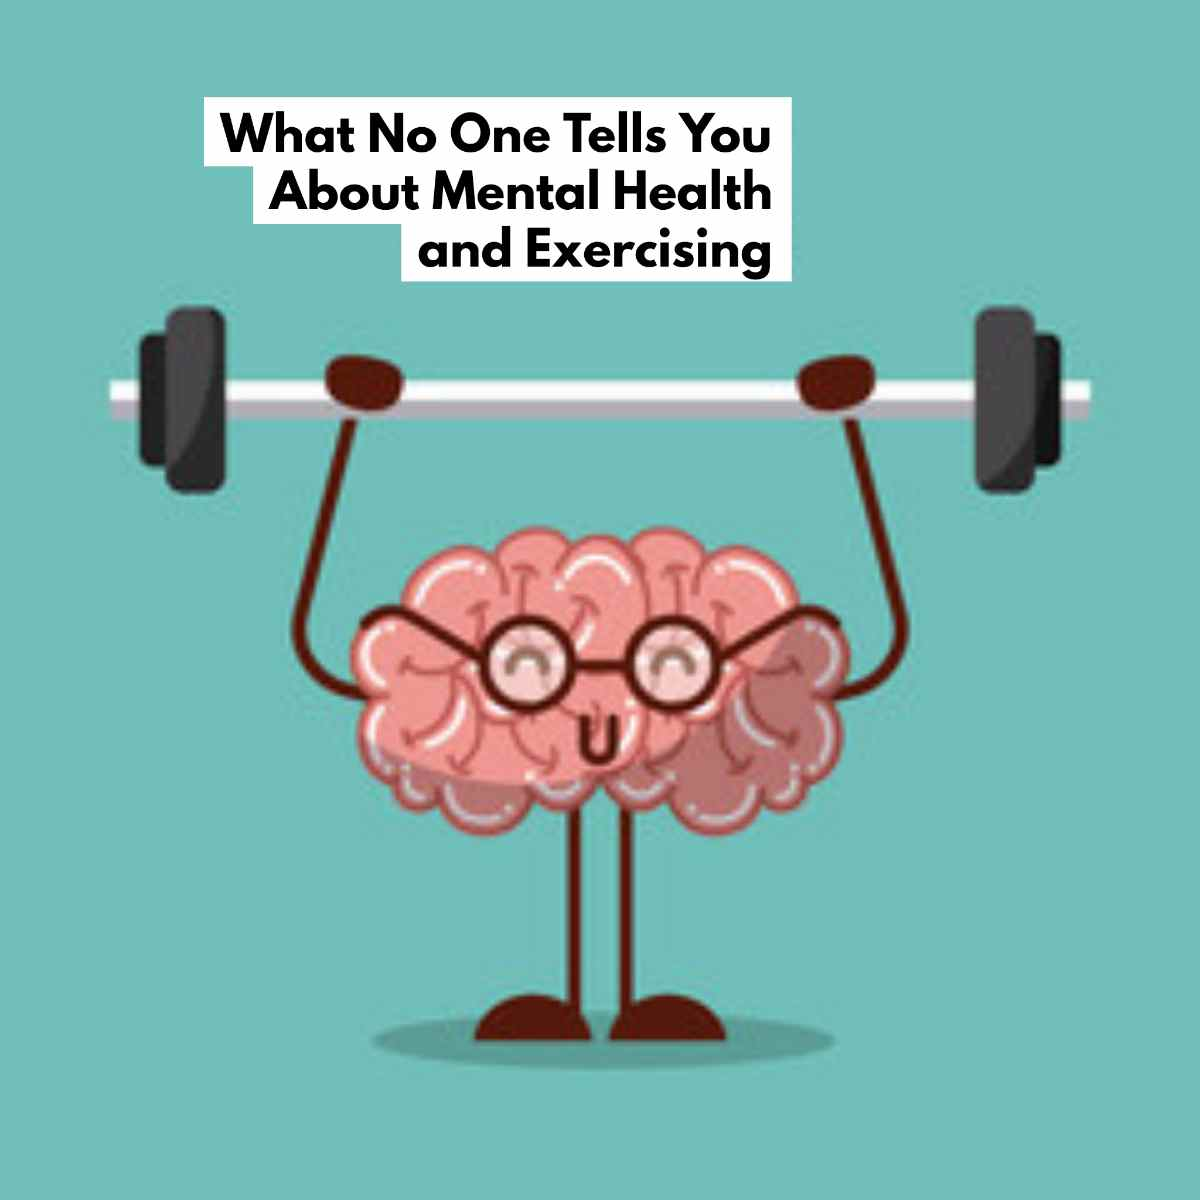 What No One Tells You About Mental Health and Exercising 1